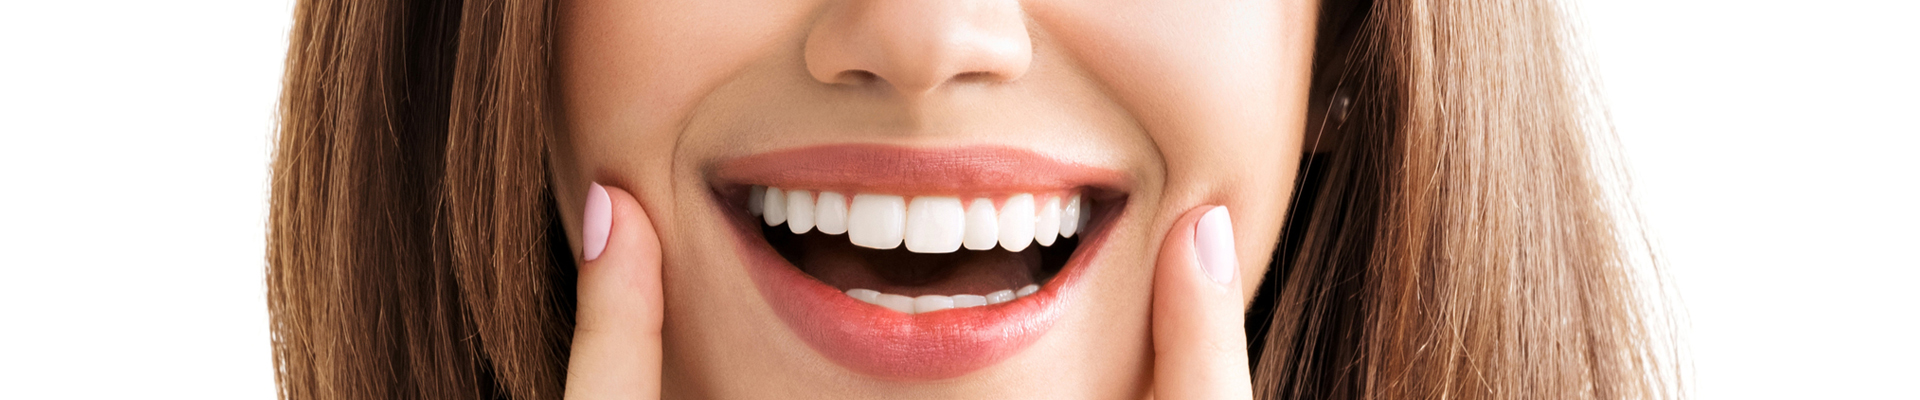 Thailand Teeth Whitening Promotions